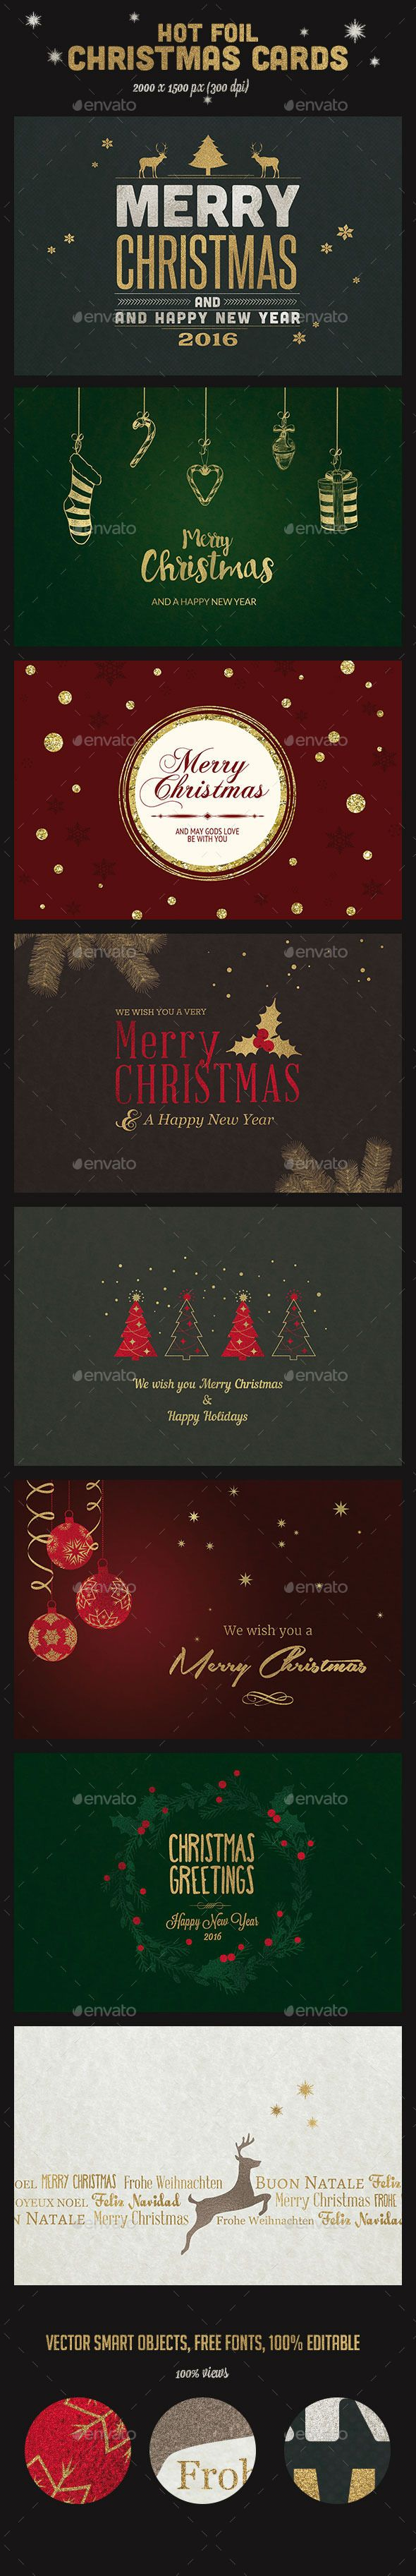 9 Hot Foil Christmas Cards Template PSD #design Download: http://graphicriver.net/item/9-hot-foil-christmas-cards-psd/13429476?ref=ksioks